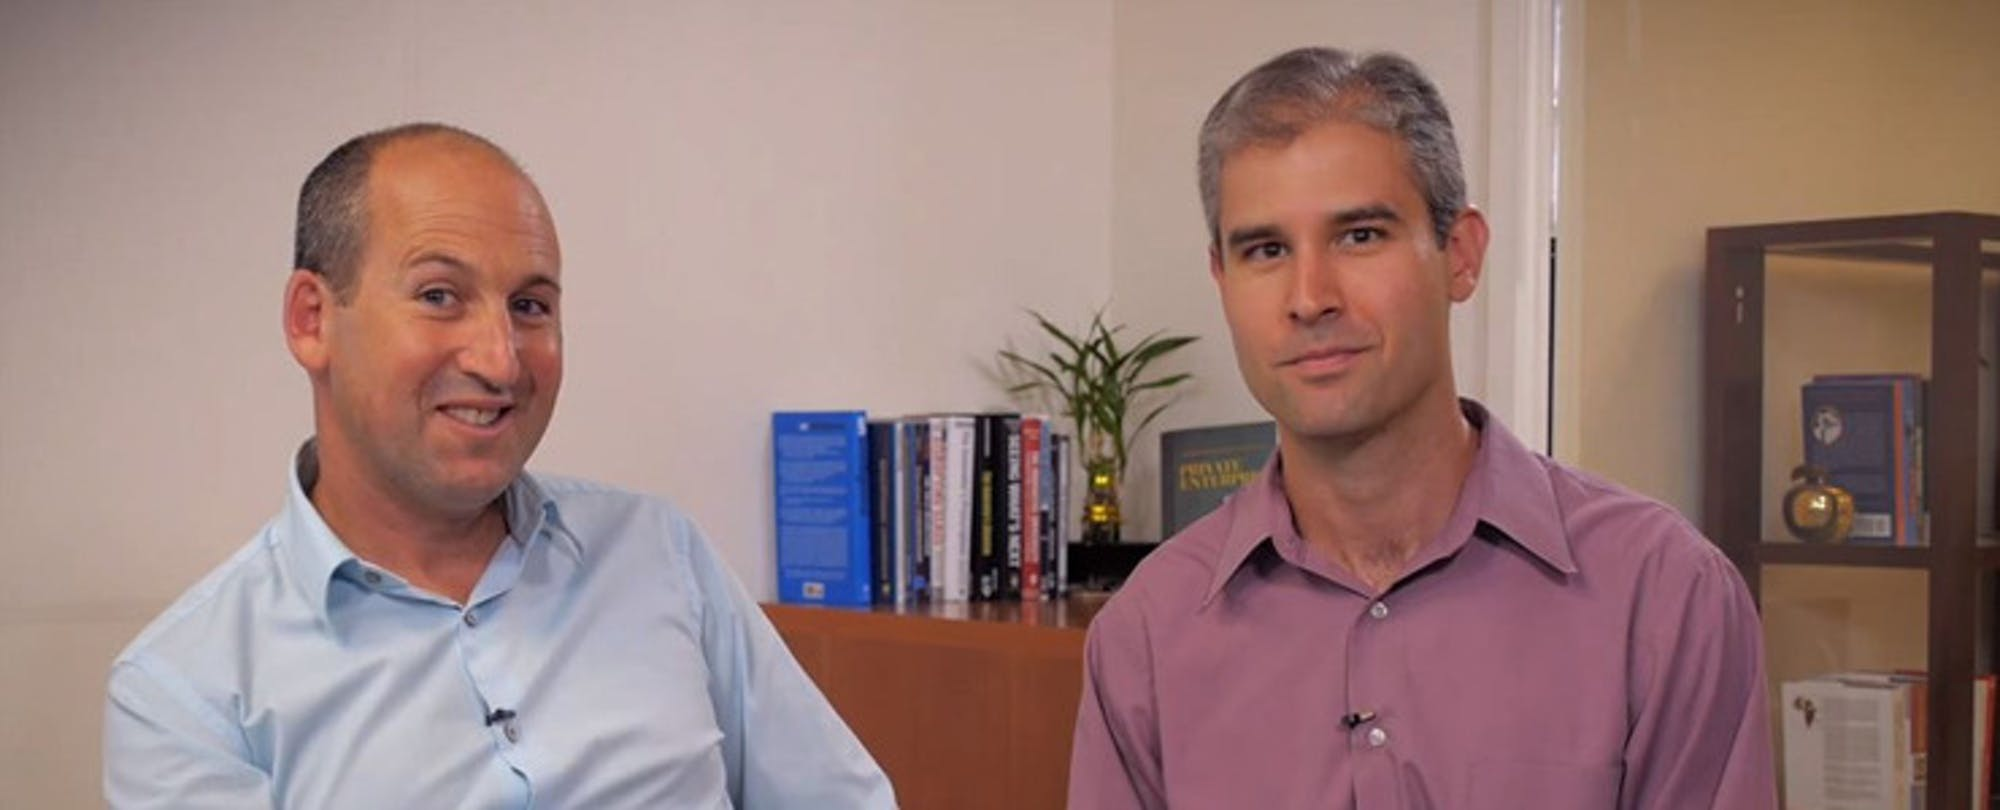 Blended Learning Gets MOOC'ed on Coursera